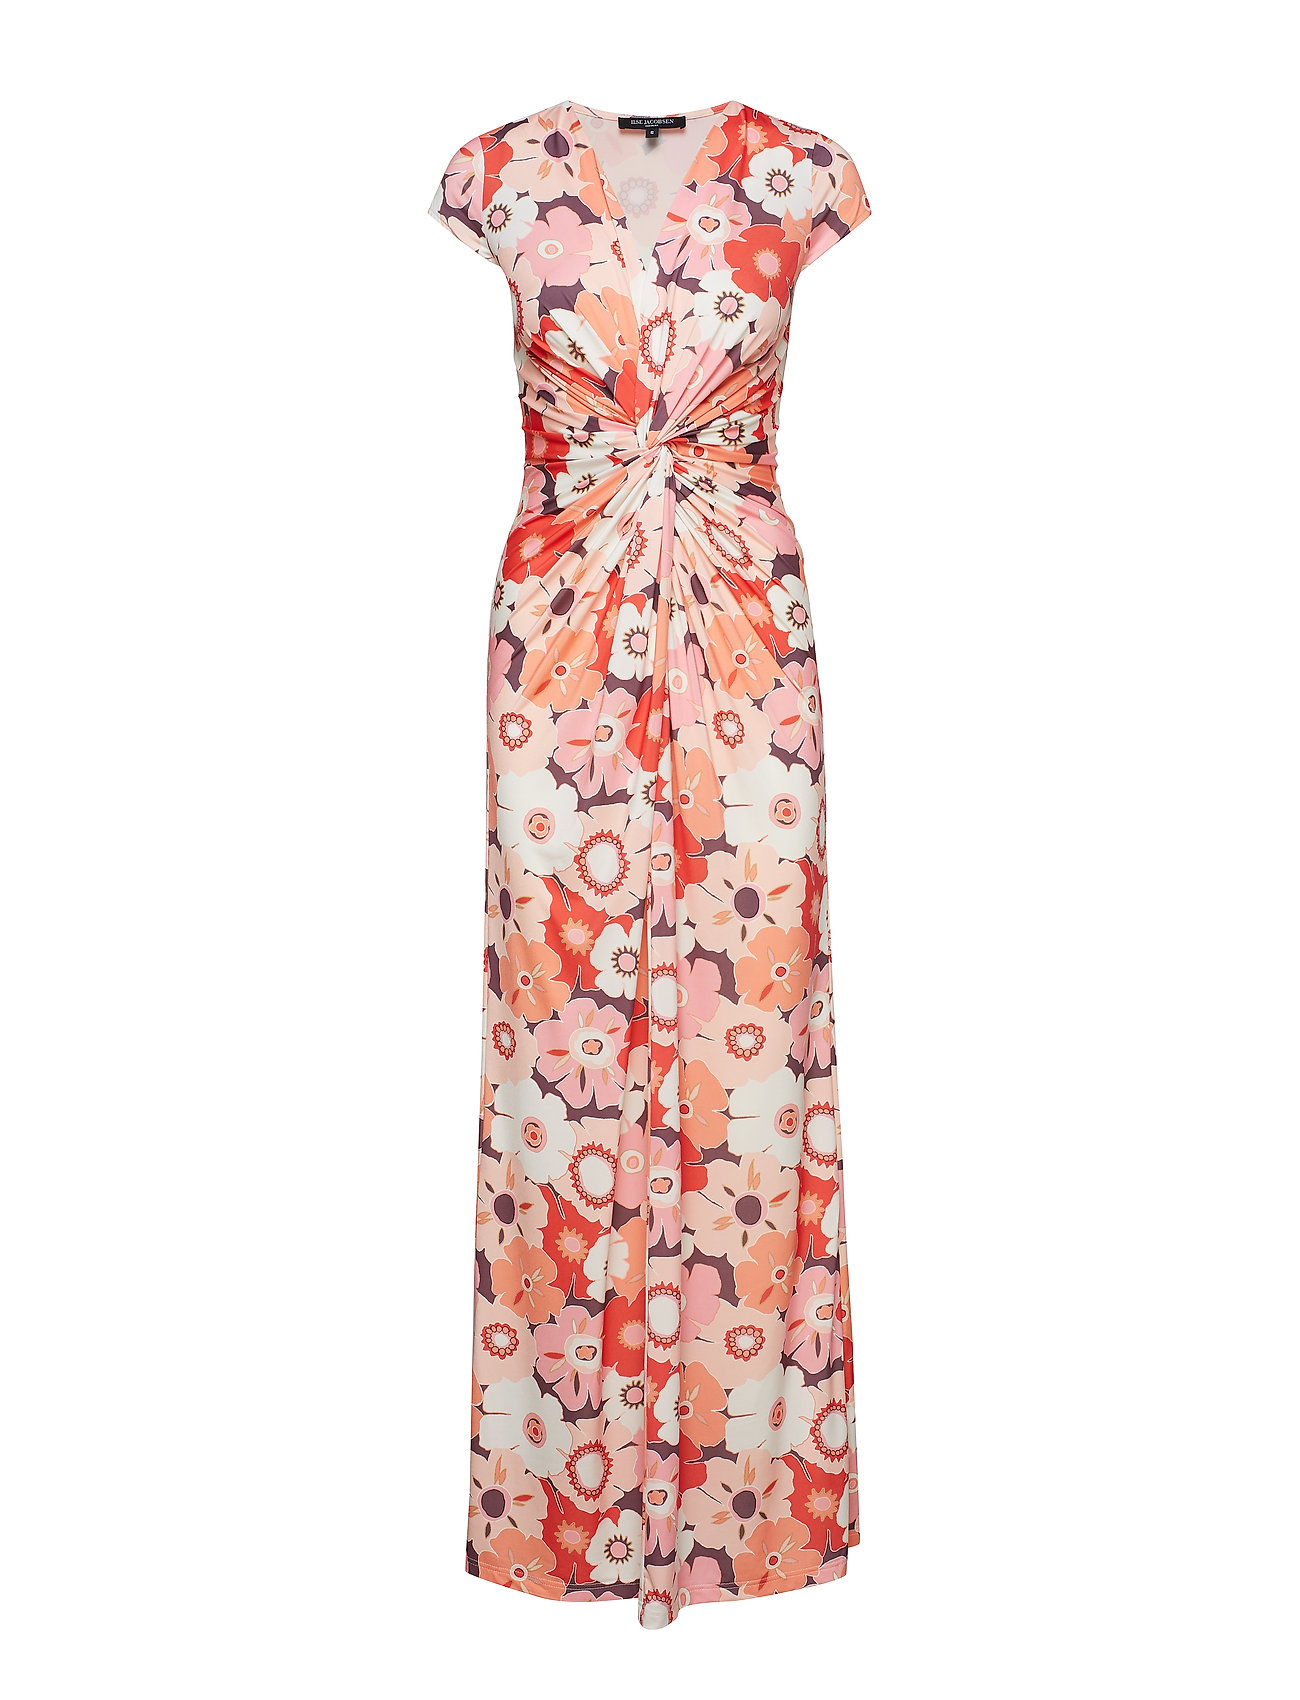 Ilse Jacobsen LONG DRESS - CAMELIA